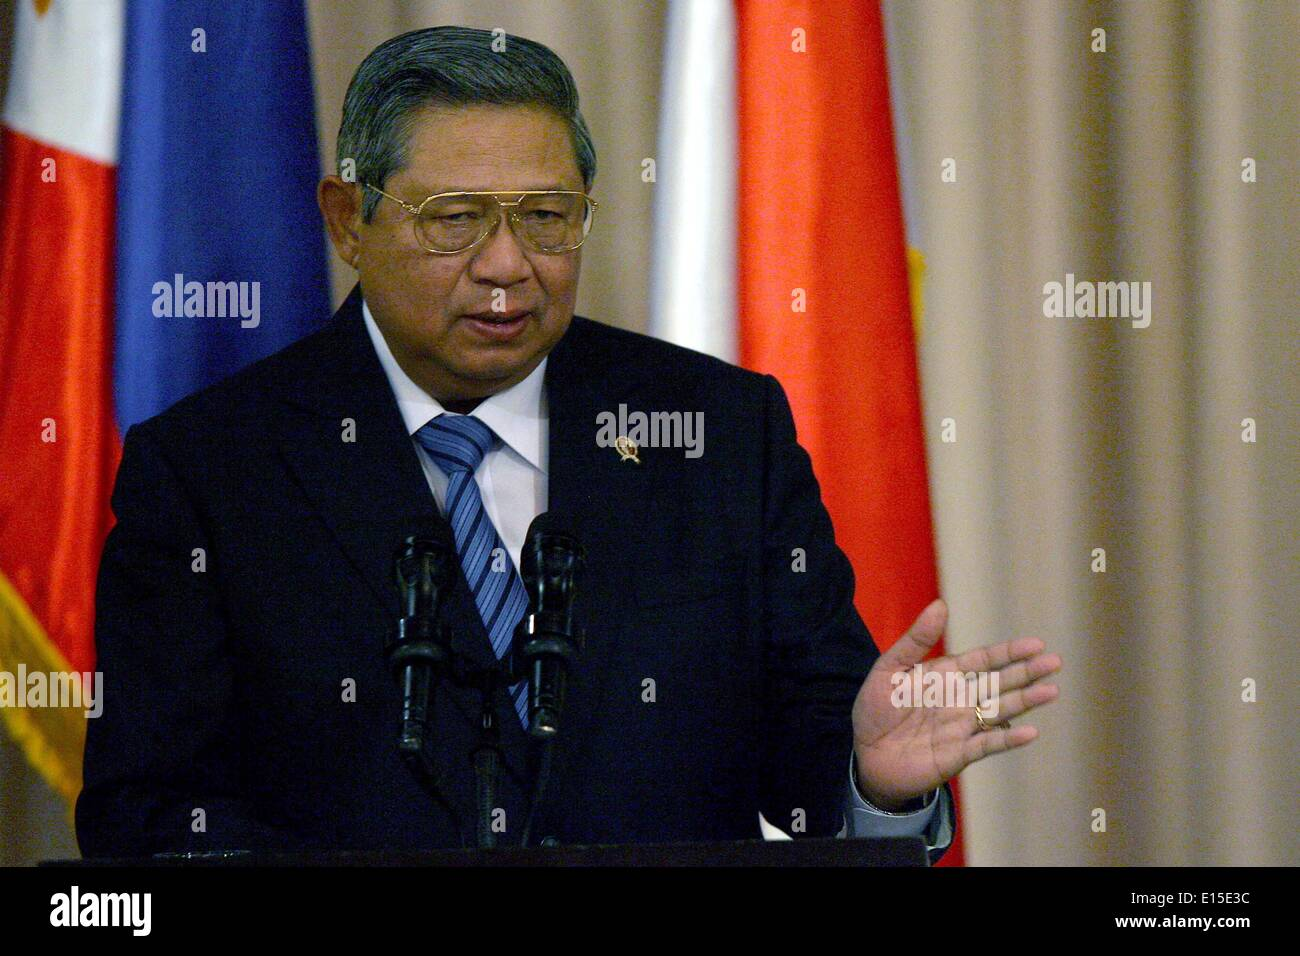 Manila, Philippines. 23rd May, 2014. Indonesian President Susilo Bambang Yudhoyono attends the joint press conference during his state visit at the presidential palace in Manila, the Philippines, May 23, 2014. The Philippines and Indonesia signed on Friday an agreement on the delimitation of their overlapping exclusive economic zones (EEZ) in the Mindanao Sea and Celebes Sea. © Rouelle Umali/Xinhua/Alamy Live News - Stock Image